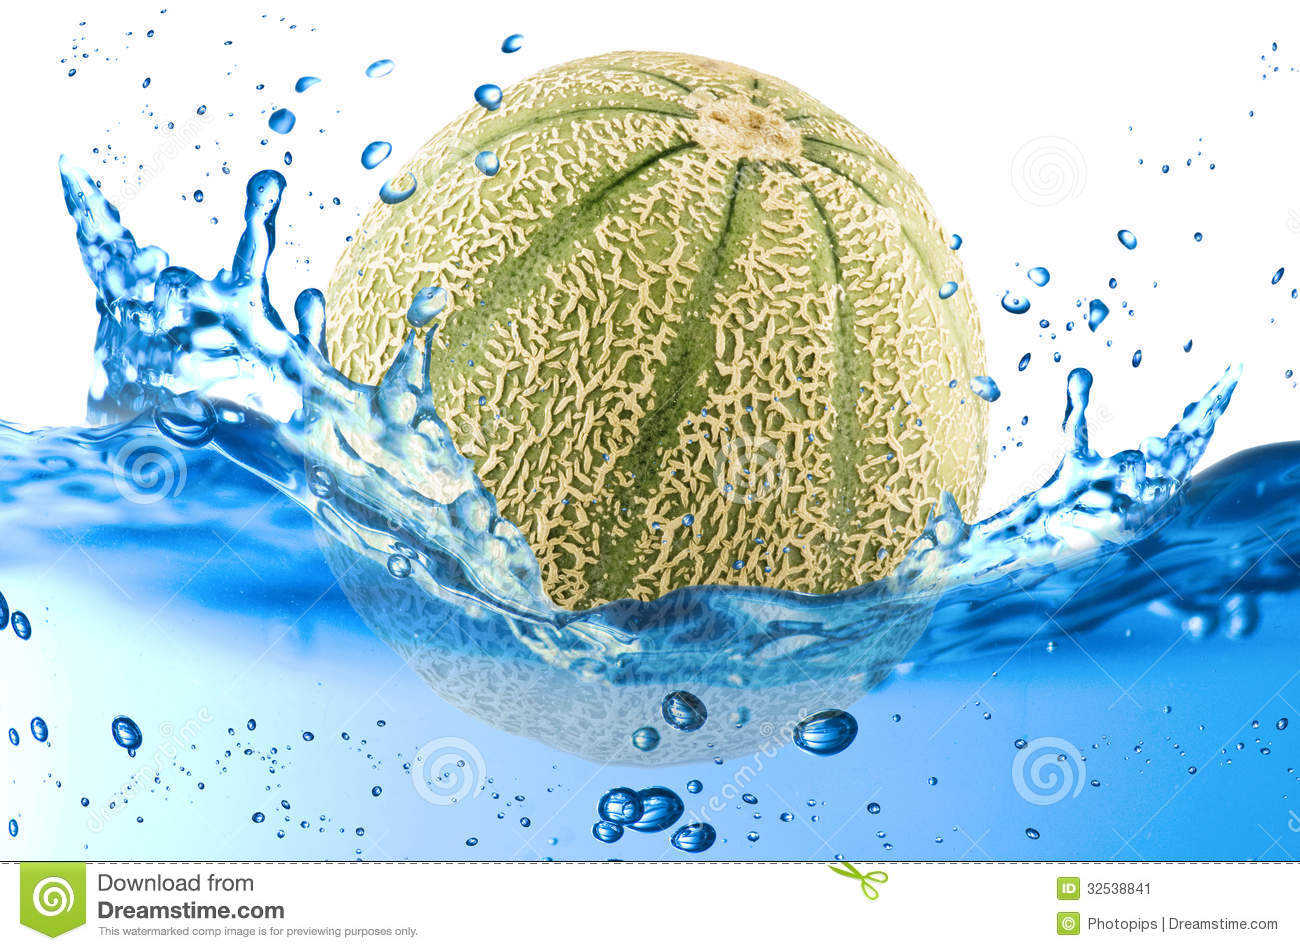 Cantaloupe Melon Splash Stock Image Image Of Humidity 32538841 The flesh is denser than a place the cantaloupe pieces on a baking tray. dreamstime com